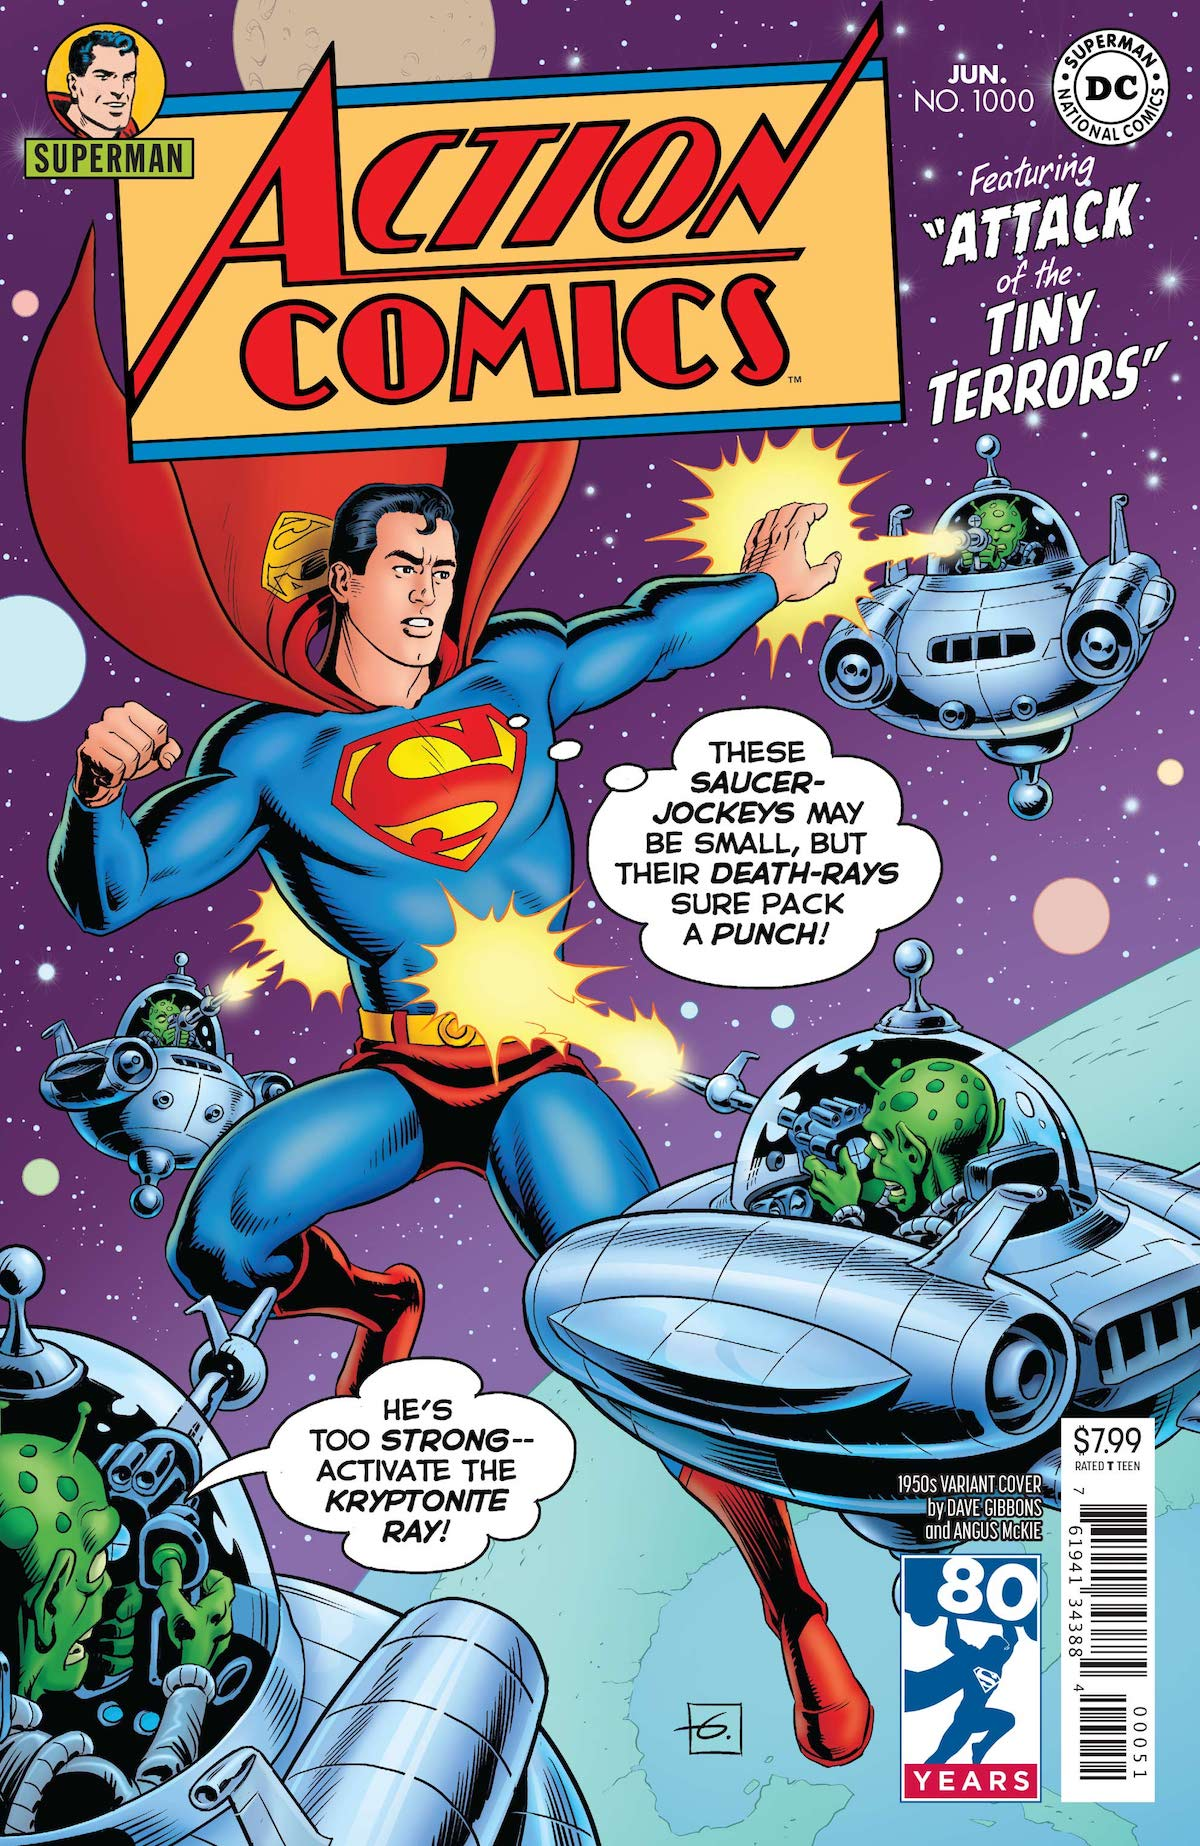 Action Comics 1,000 Dave Gibbons variant